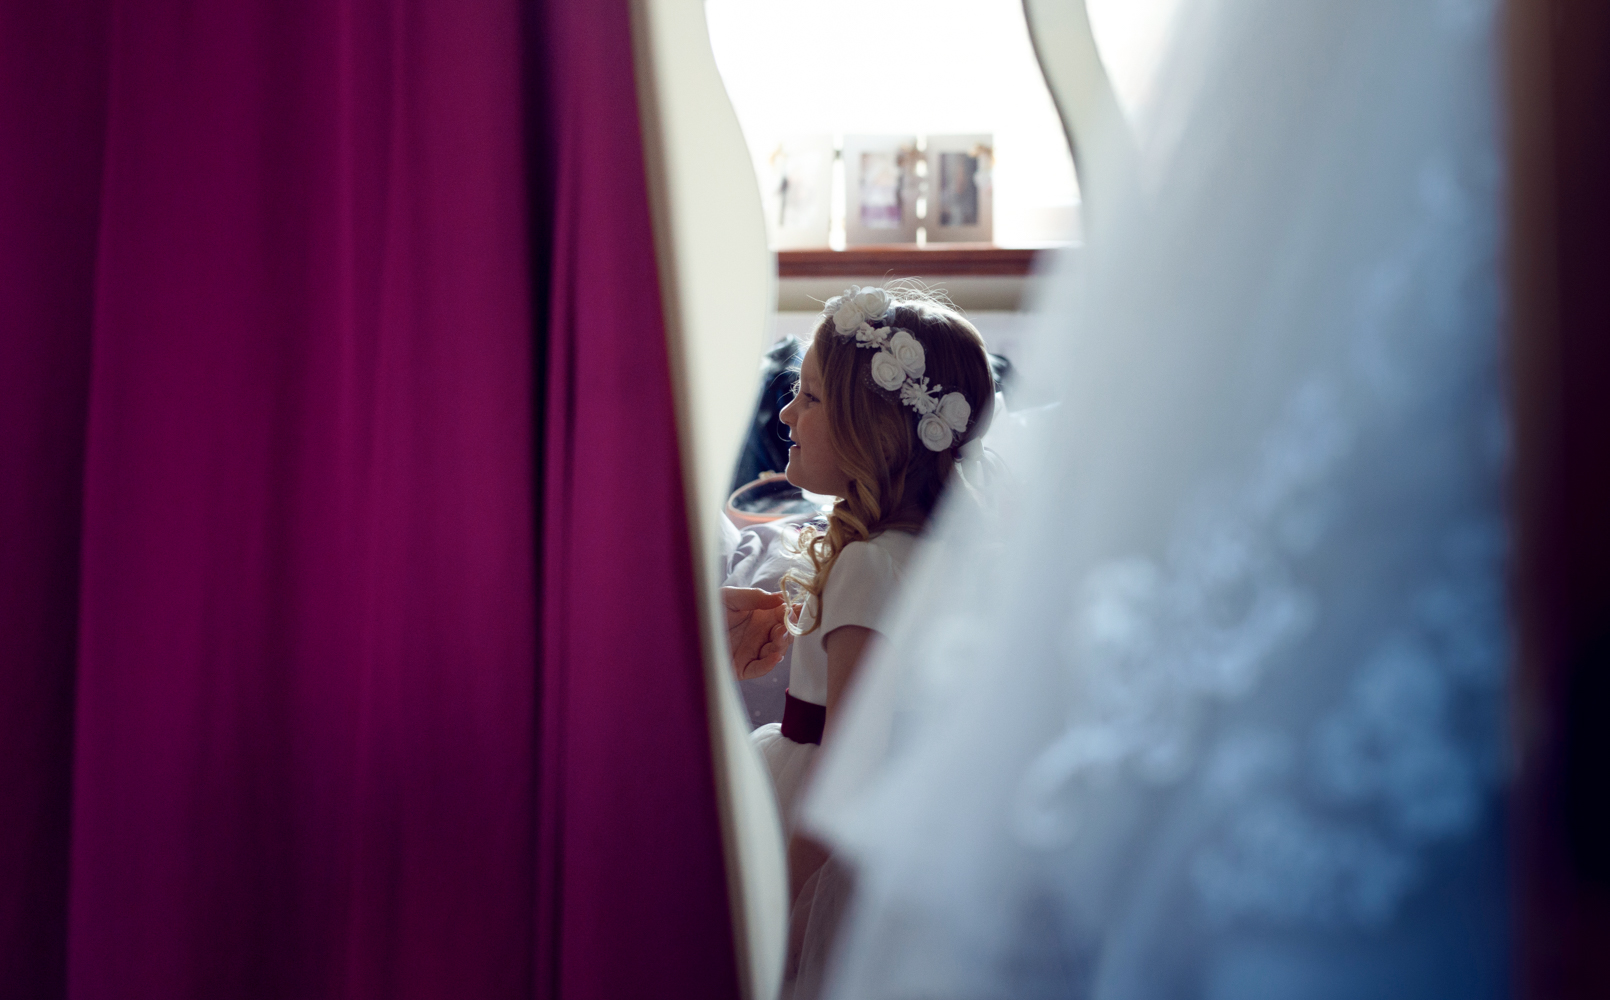 A little bridesmaid looking at the bride in her wedding dress